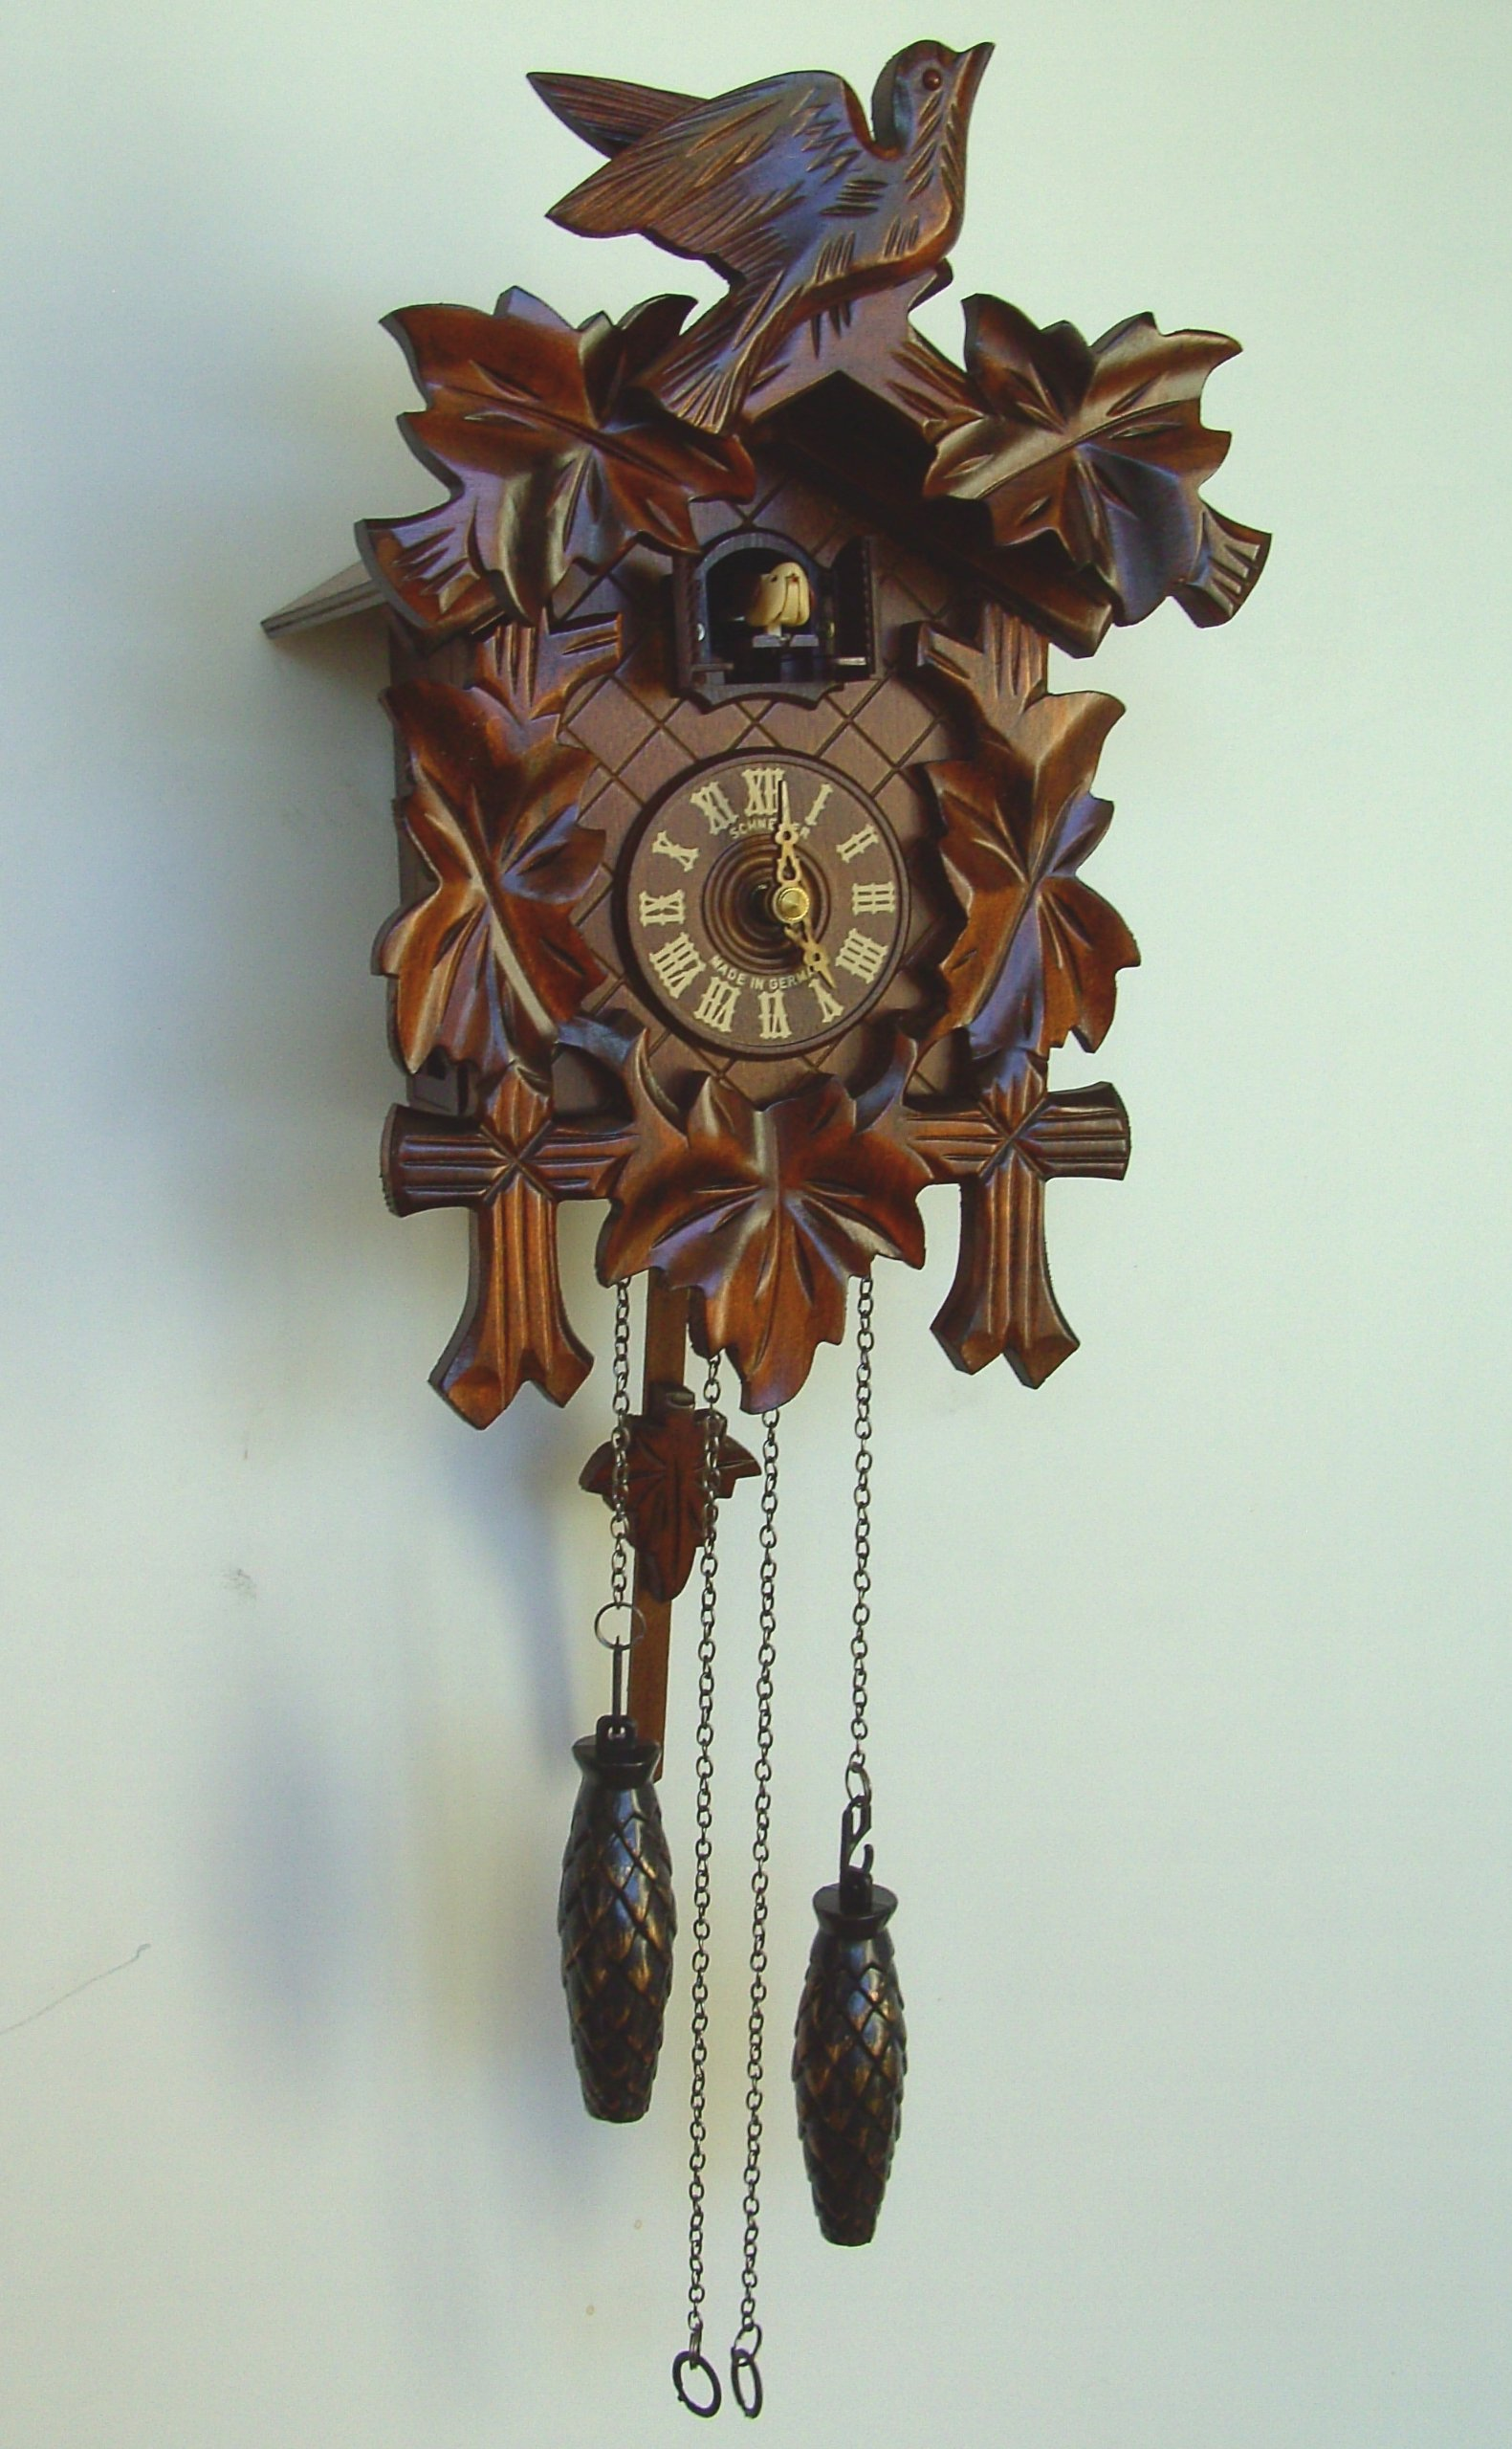 Quartz Black Forest Cuckoo Clocks by Schneider Cuckoo Clocks